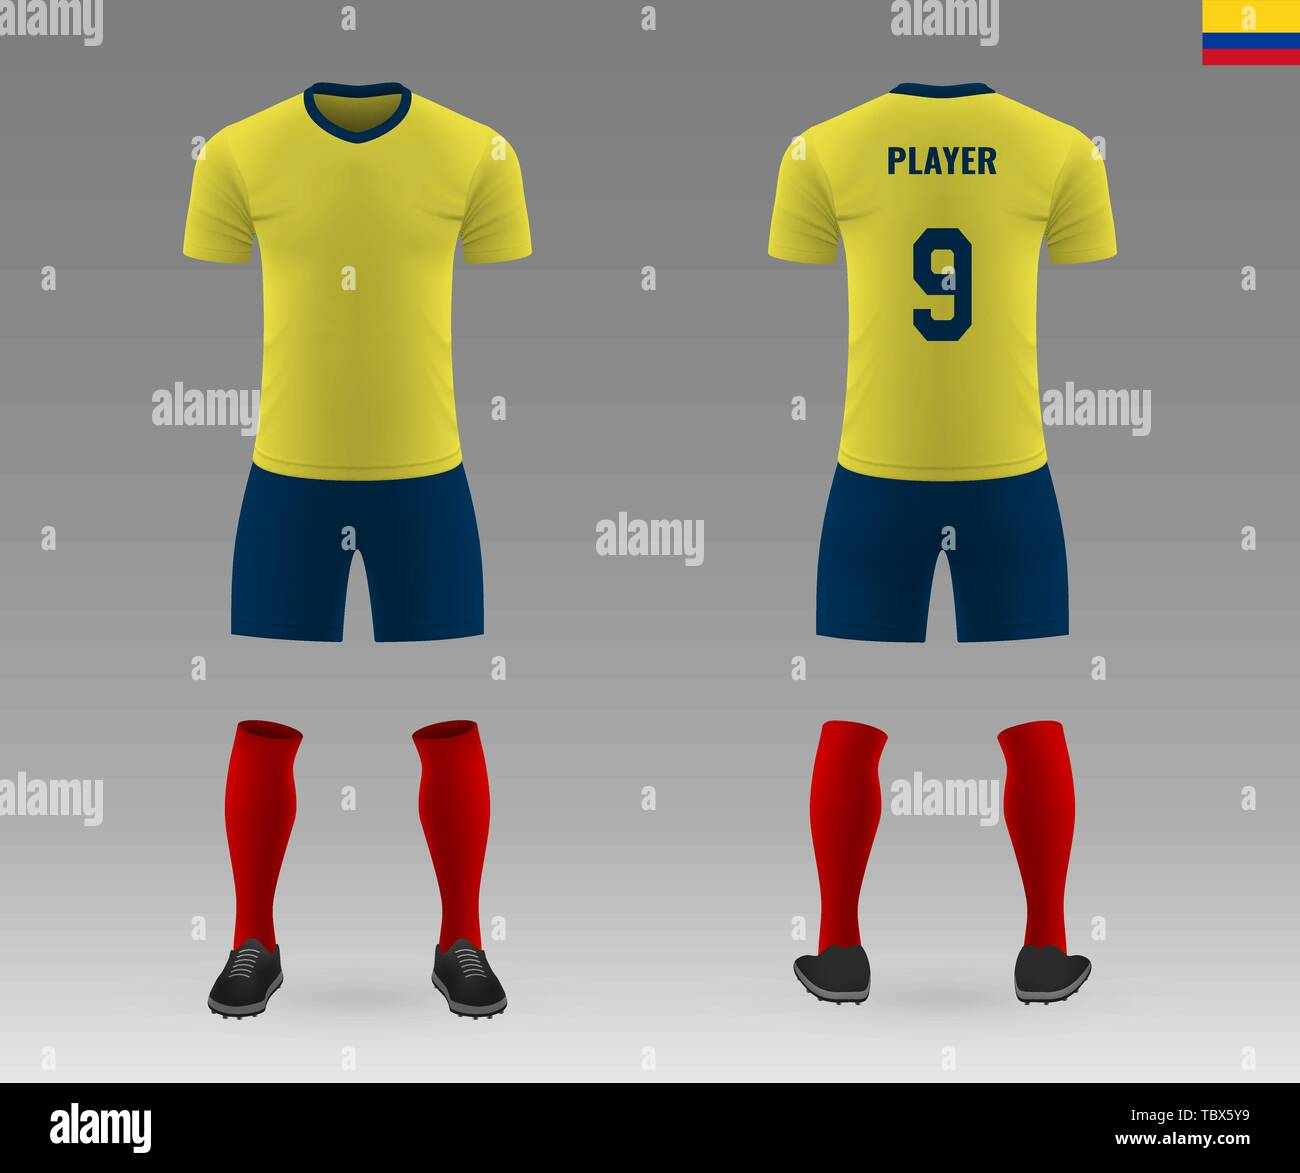 new style 5a6af 81cfd football kit of national team Colombia, shirt template for ...